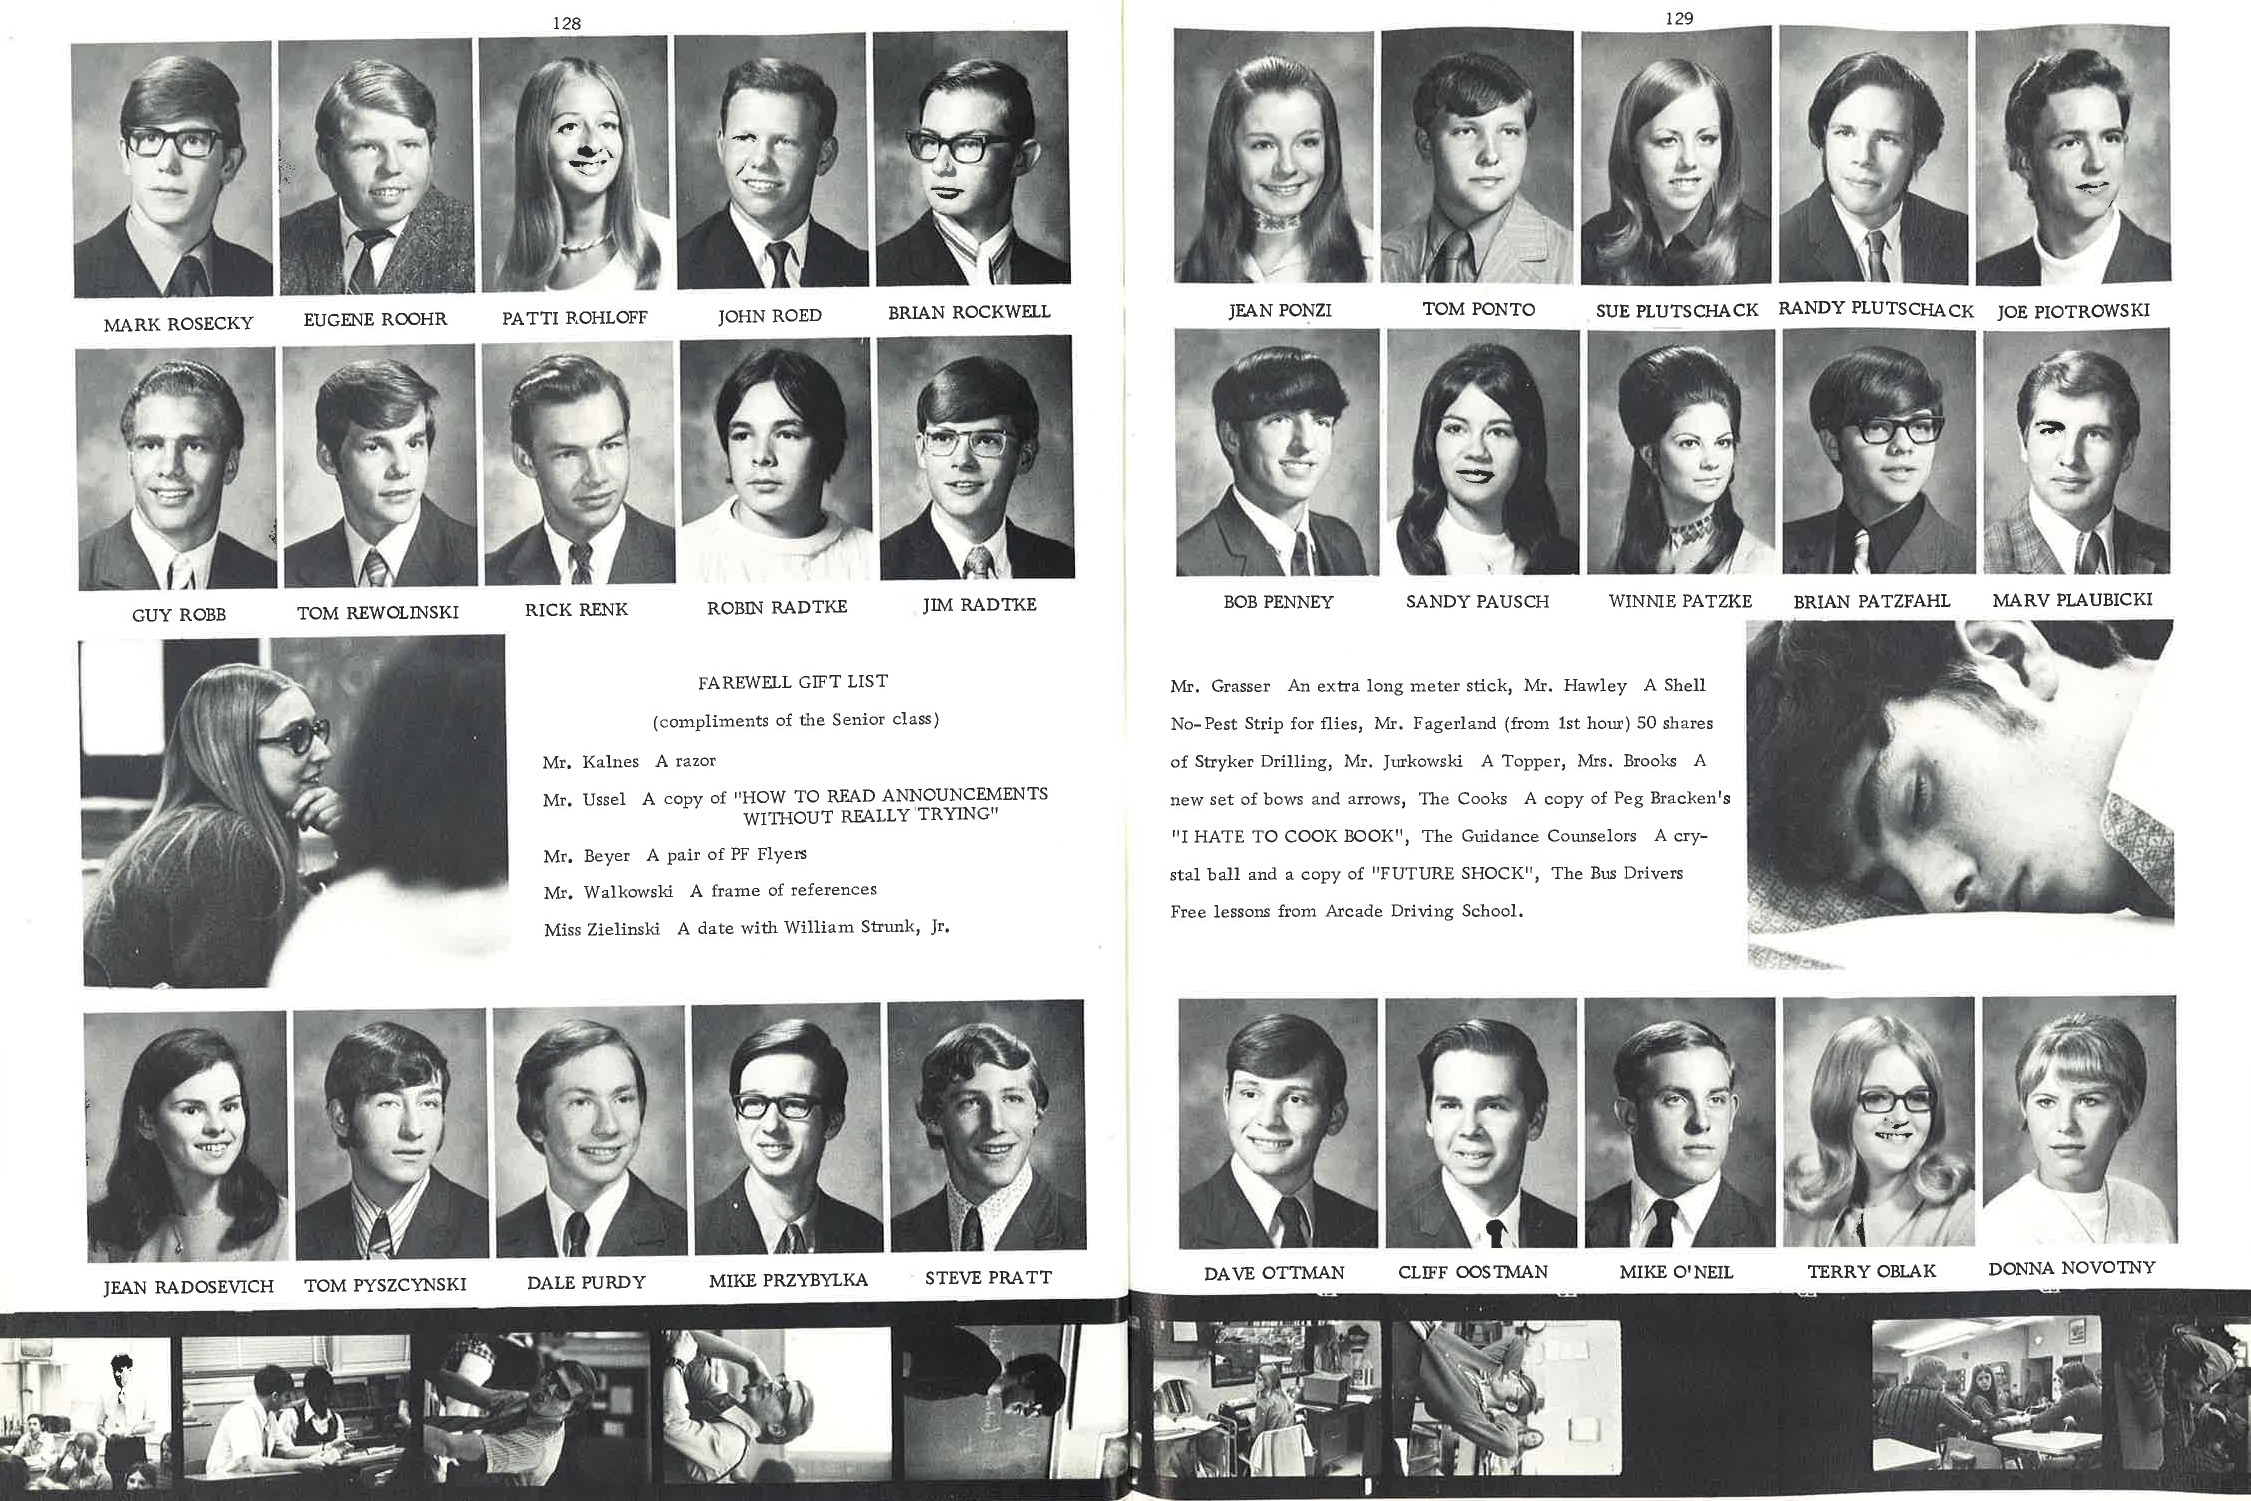 1972_Yearbook_128-129.jpg